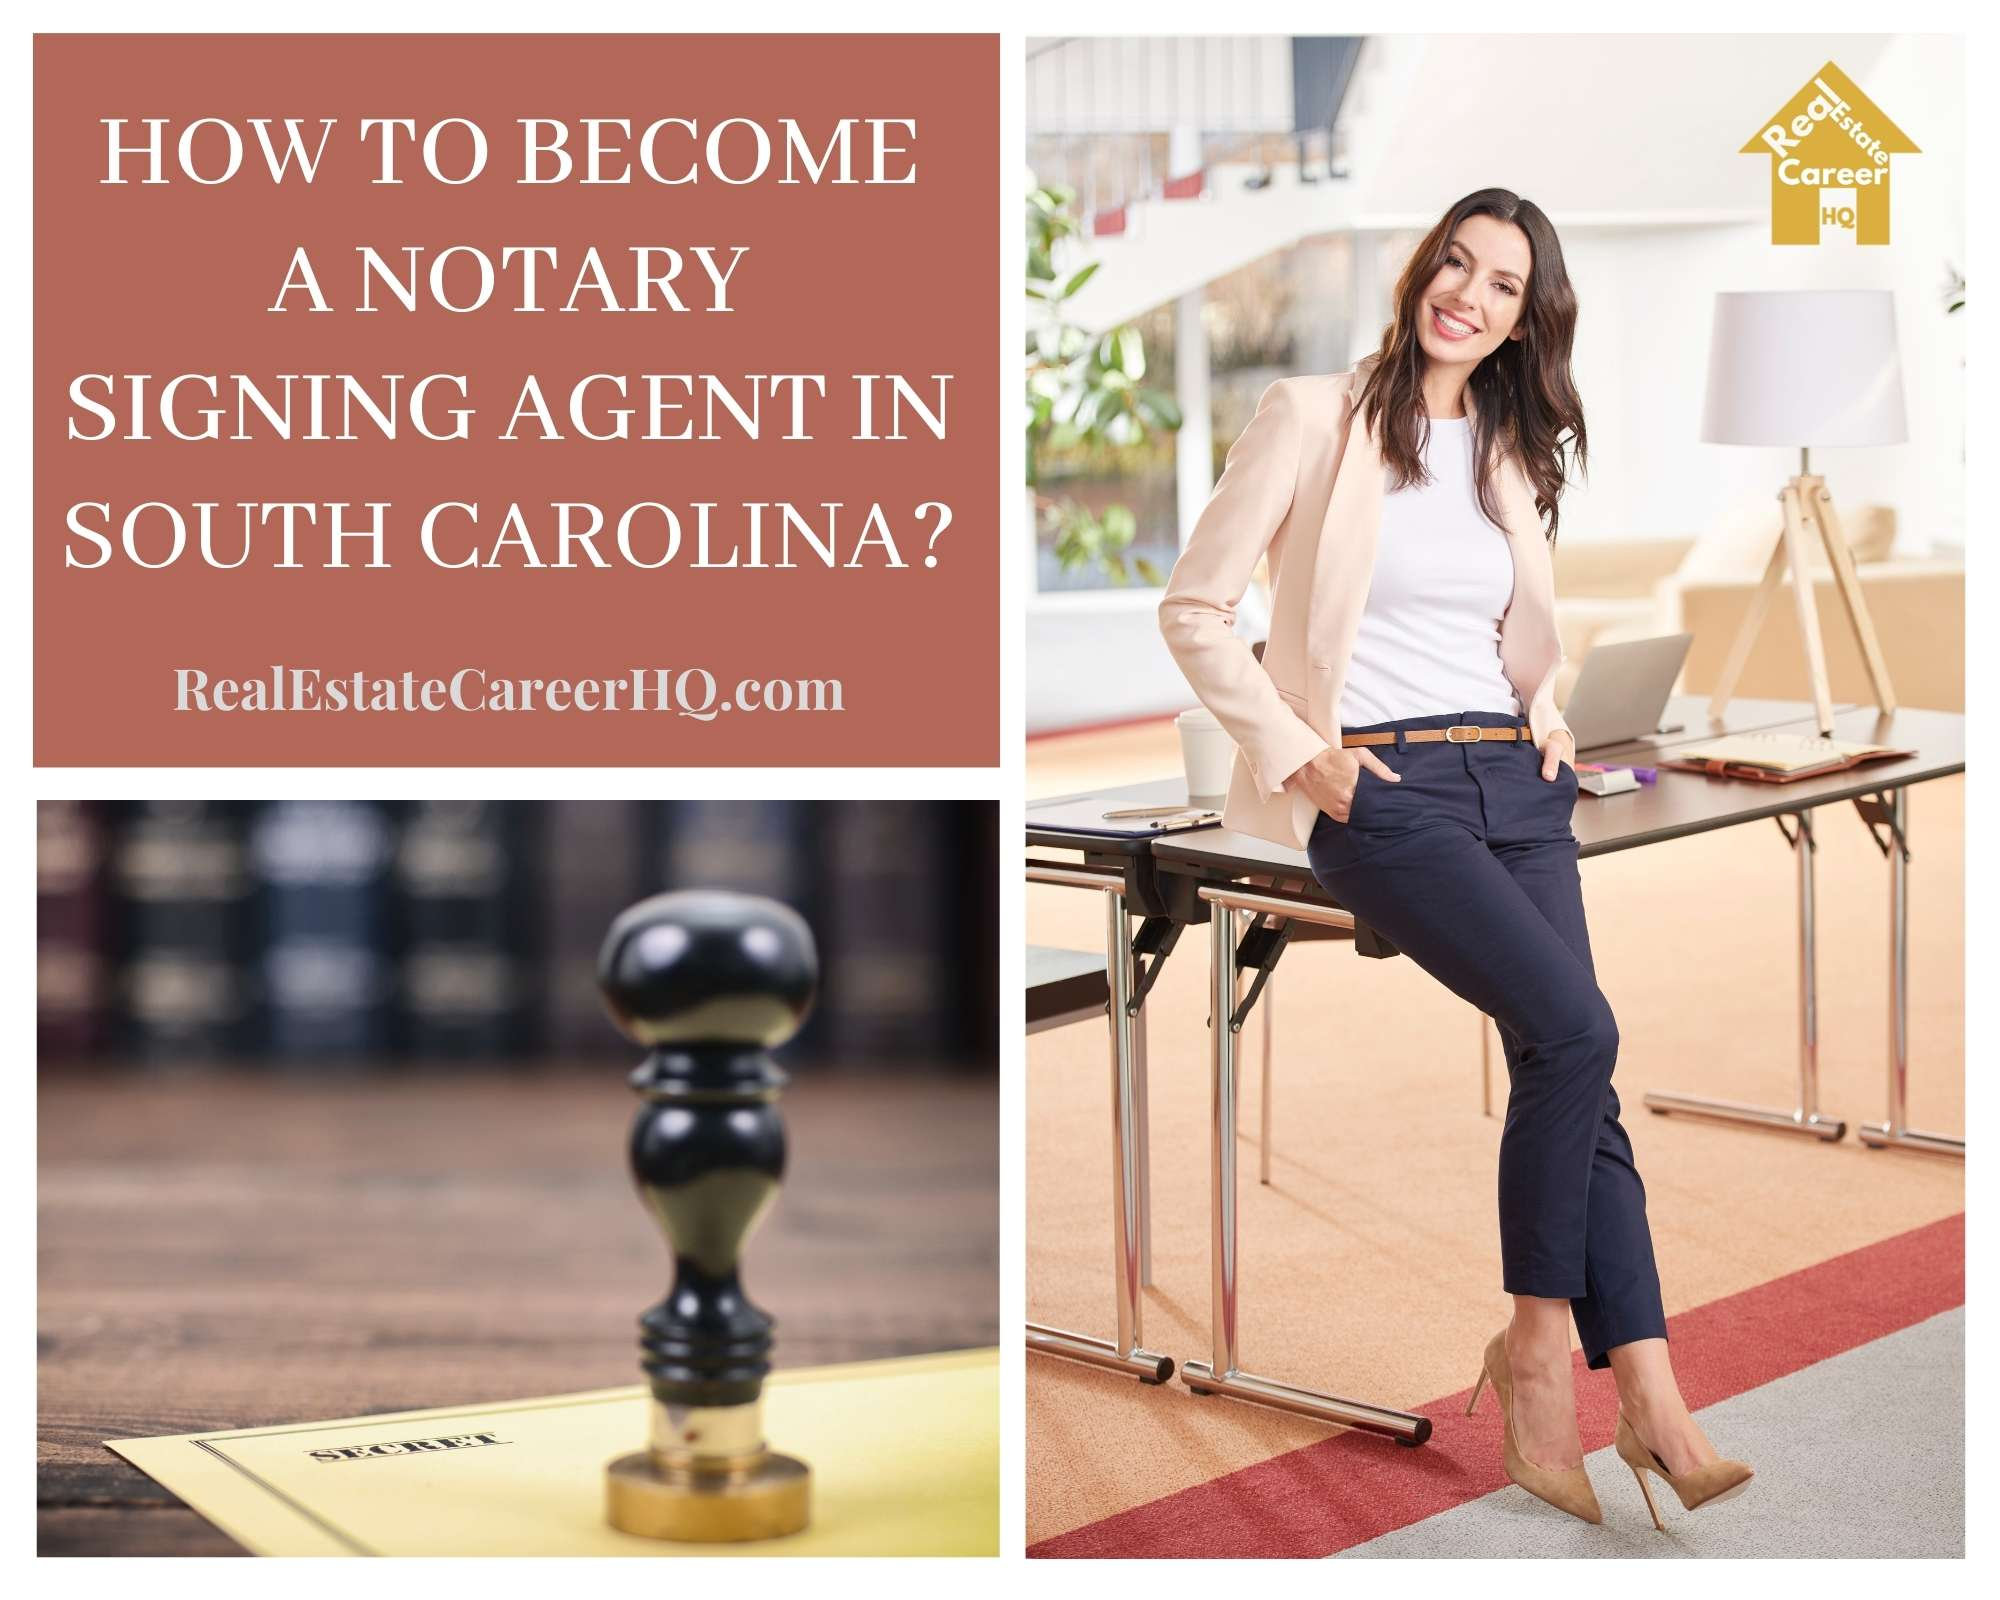 How to Become a Notary Signing Agent in South Carolina